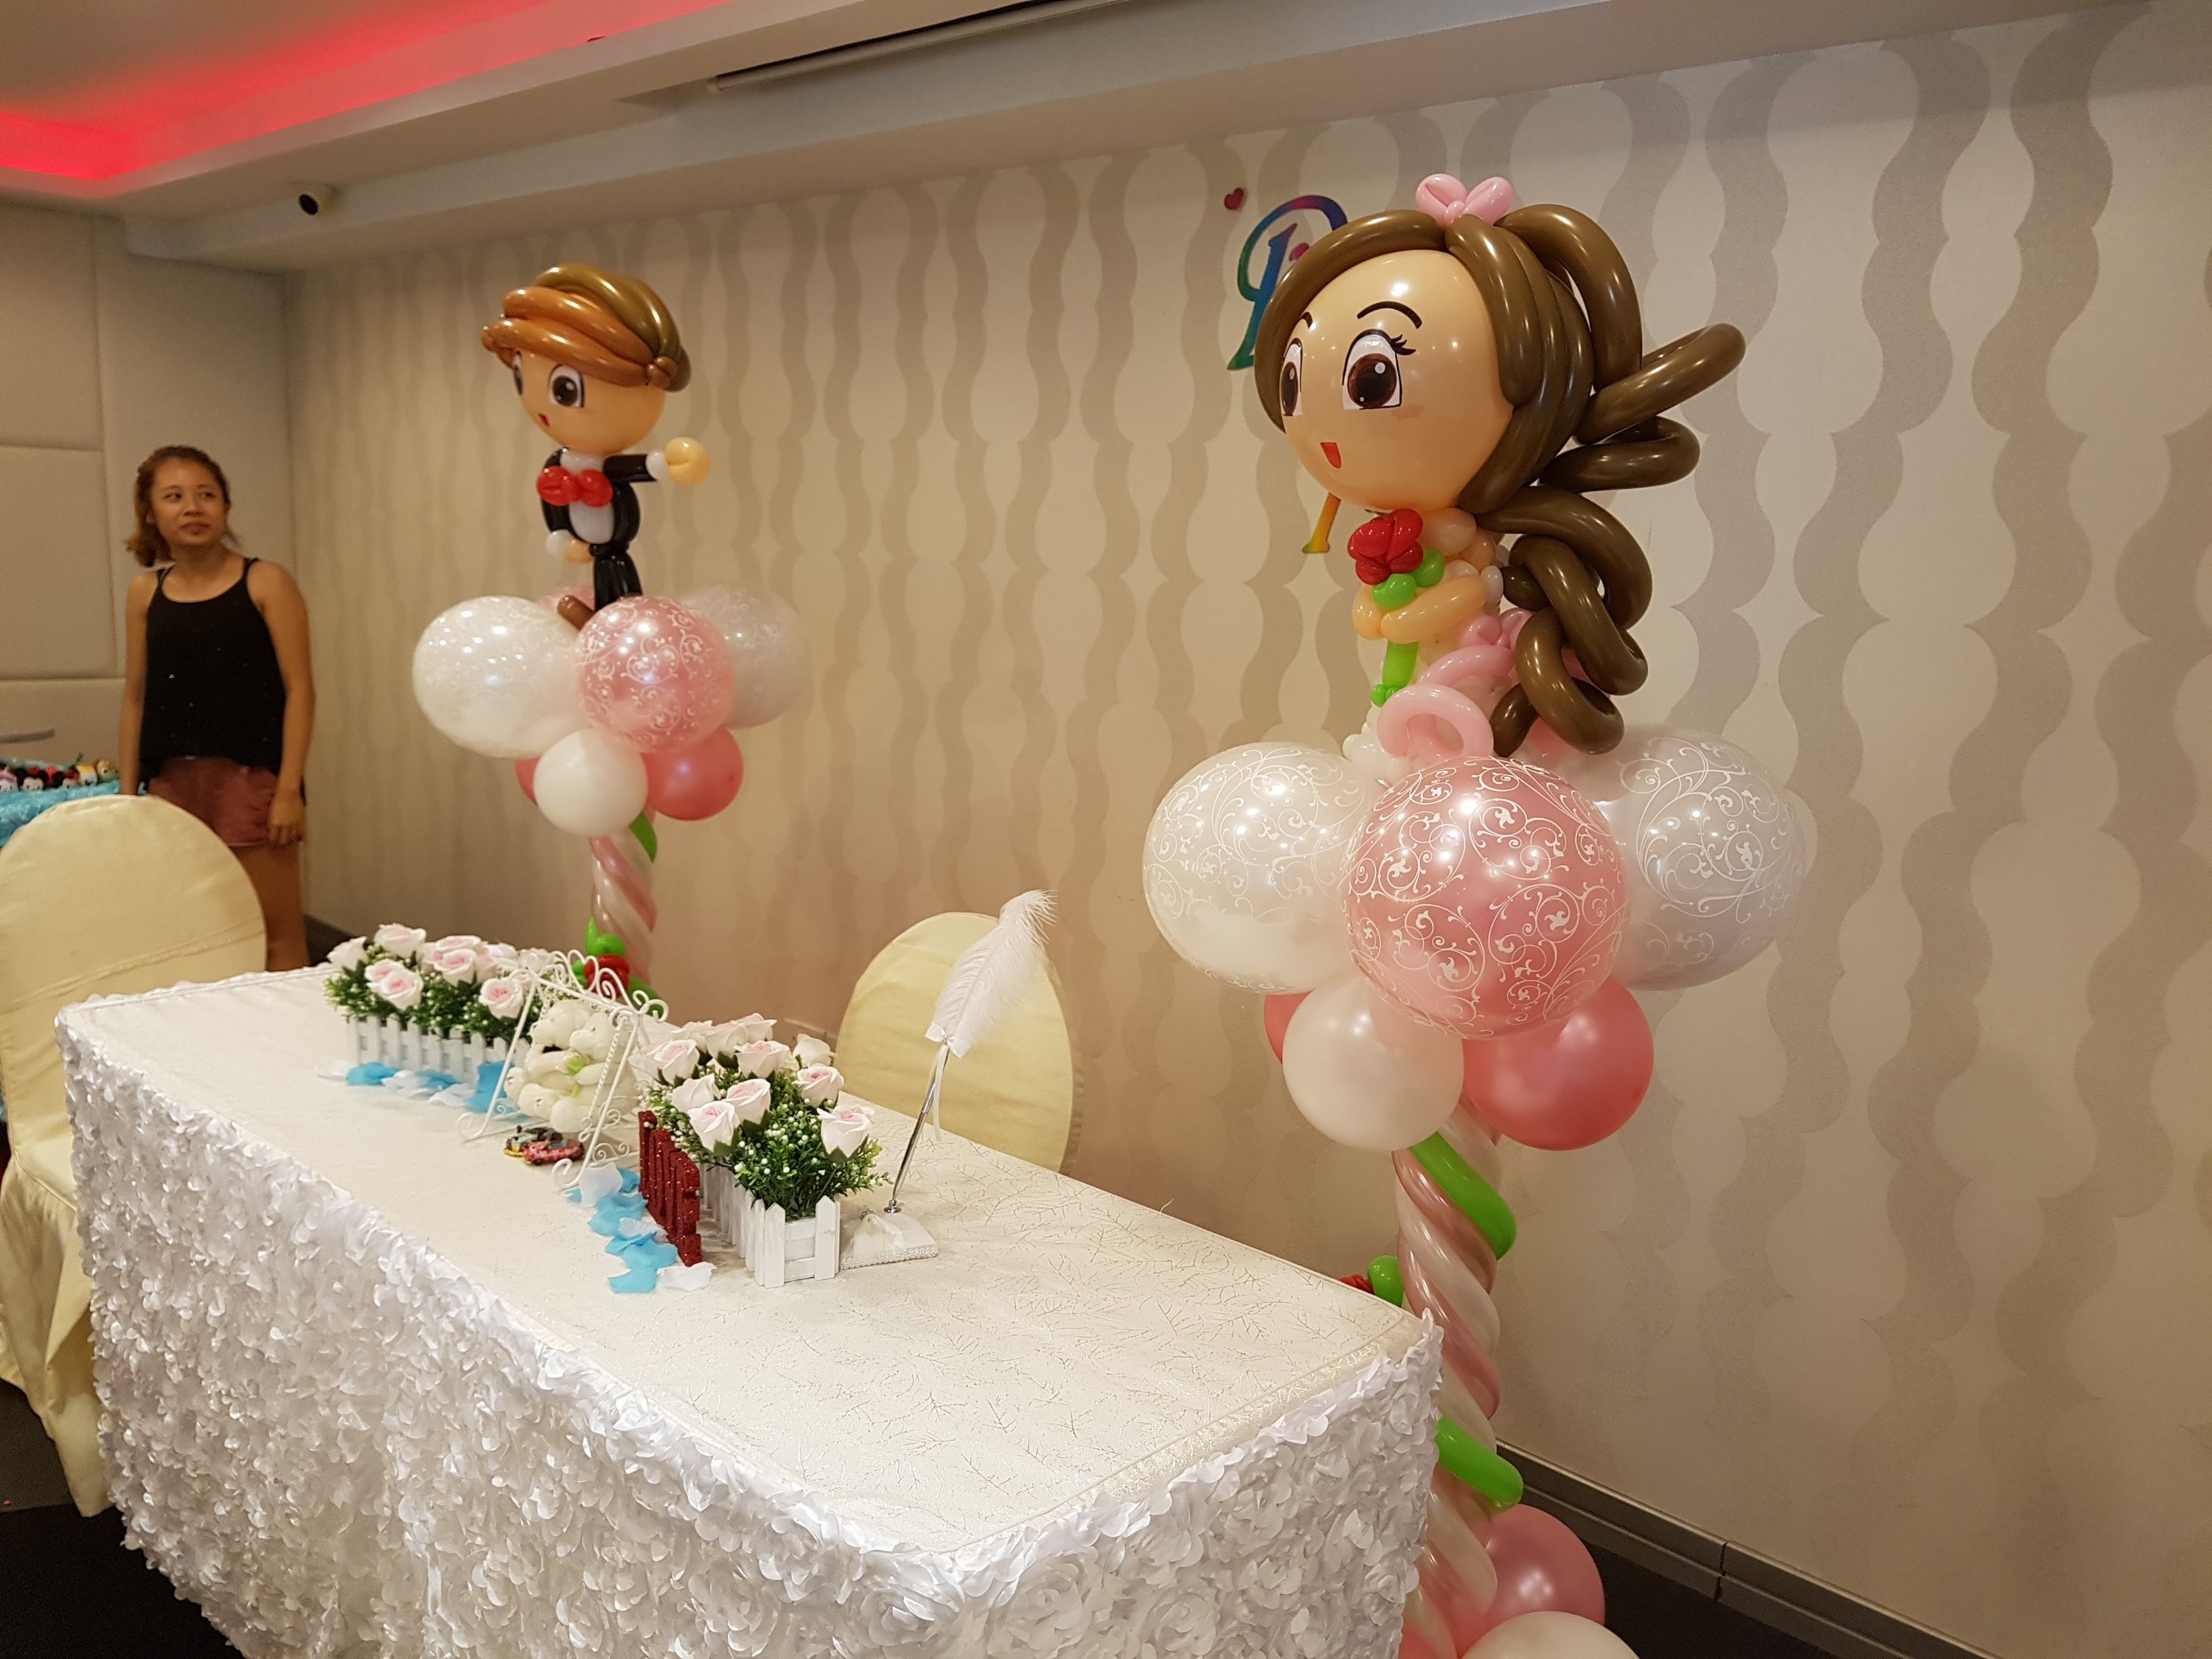 , Cute and elegant balloon decorations for wedding ceremony / solemnization!, Singapore Balloon Decoration Services - Balloon Workshop and Balloon Sculpting